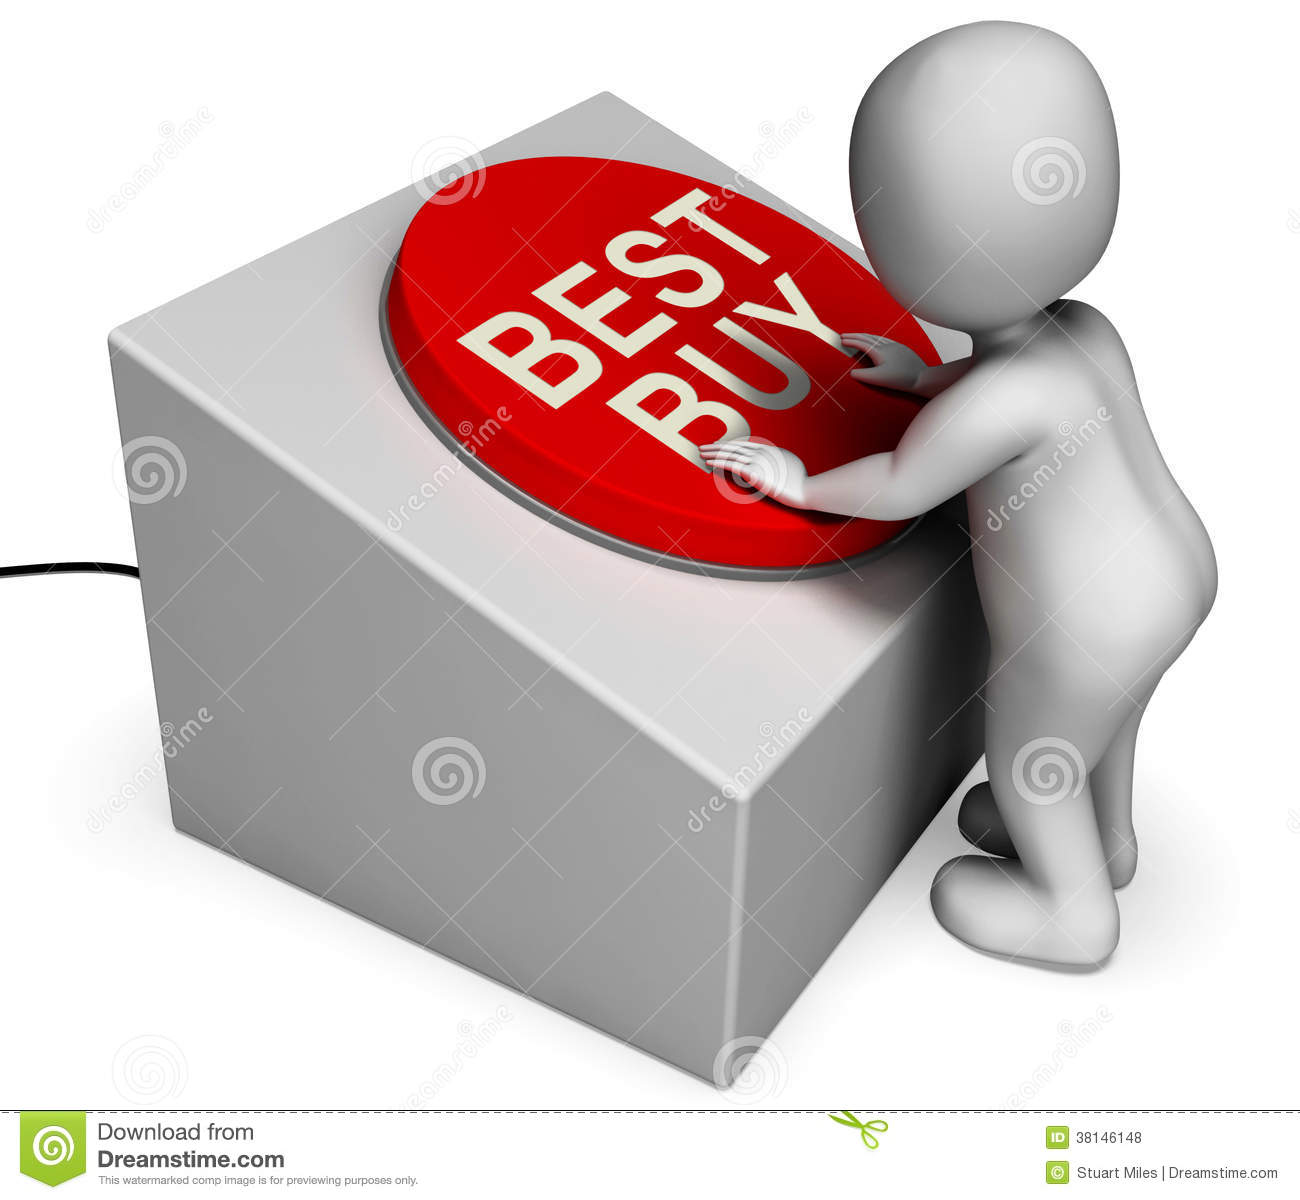 find best buys near meaning